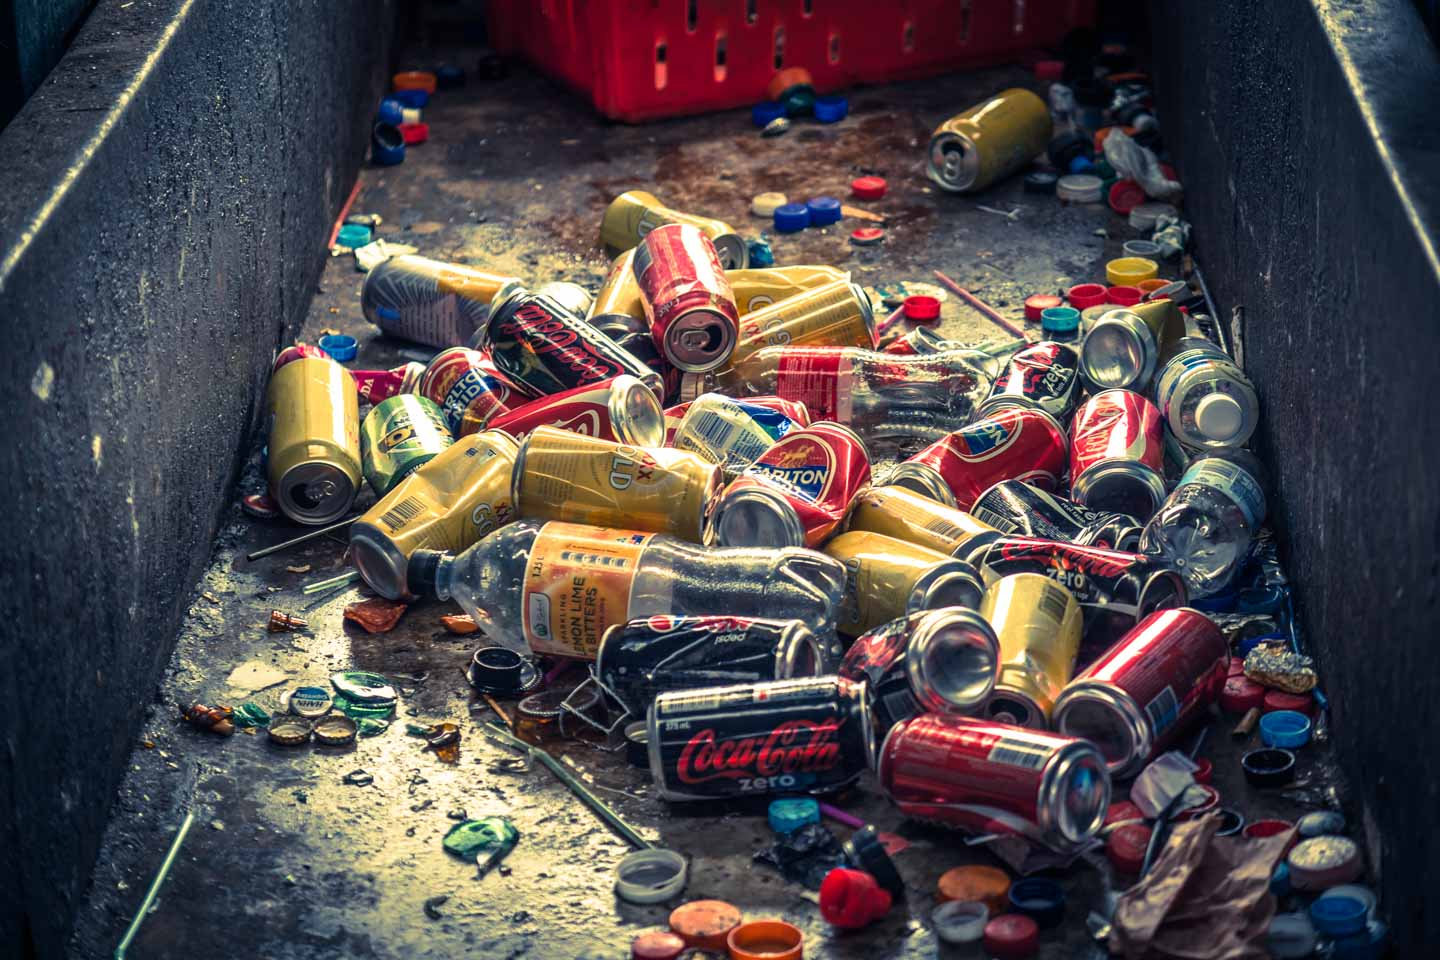 Reuse Recycle Recycling Cans and Bottles Australia waste management by YKUT YouKeepUsTraveling